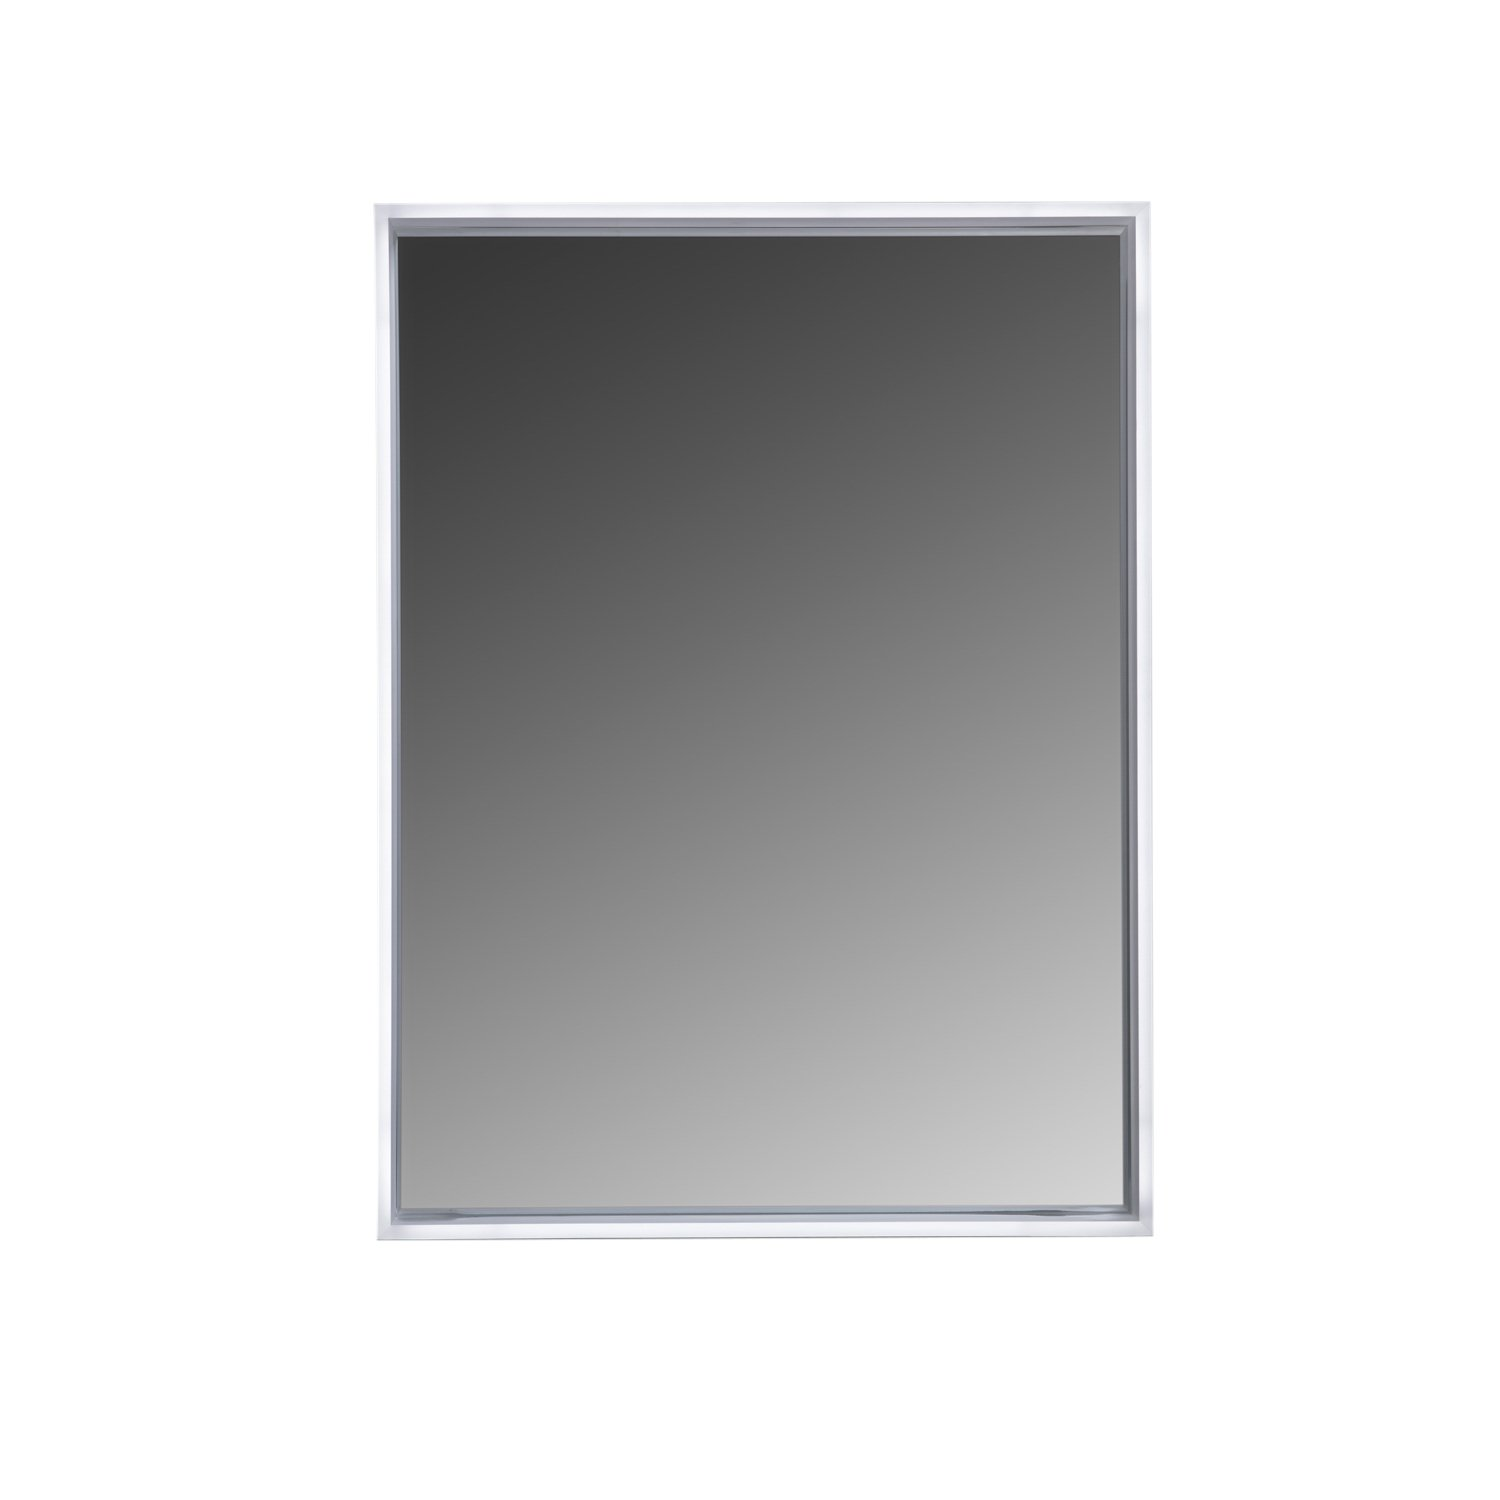 MAYKKE Avery 32'' W x 24'' H LED Mirror, Wall Mounted Lighted Bathroom Vanity Mirror, Frameless Mirror, Horizontal or Vertical Mirror with LED Lighting Border UL Certified, LMA1024101